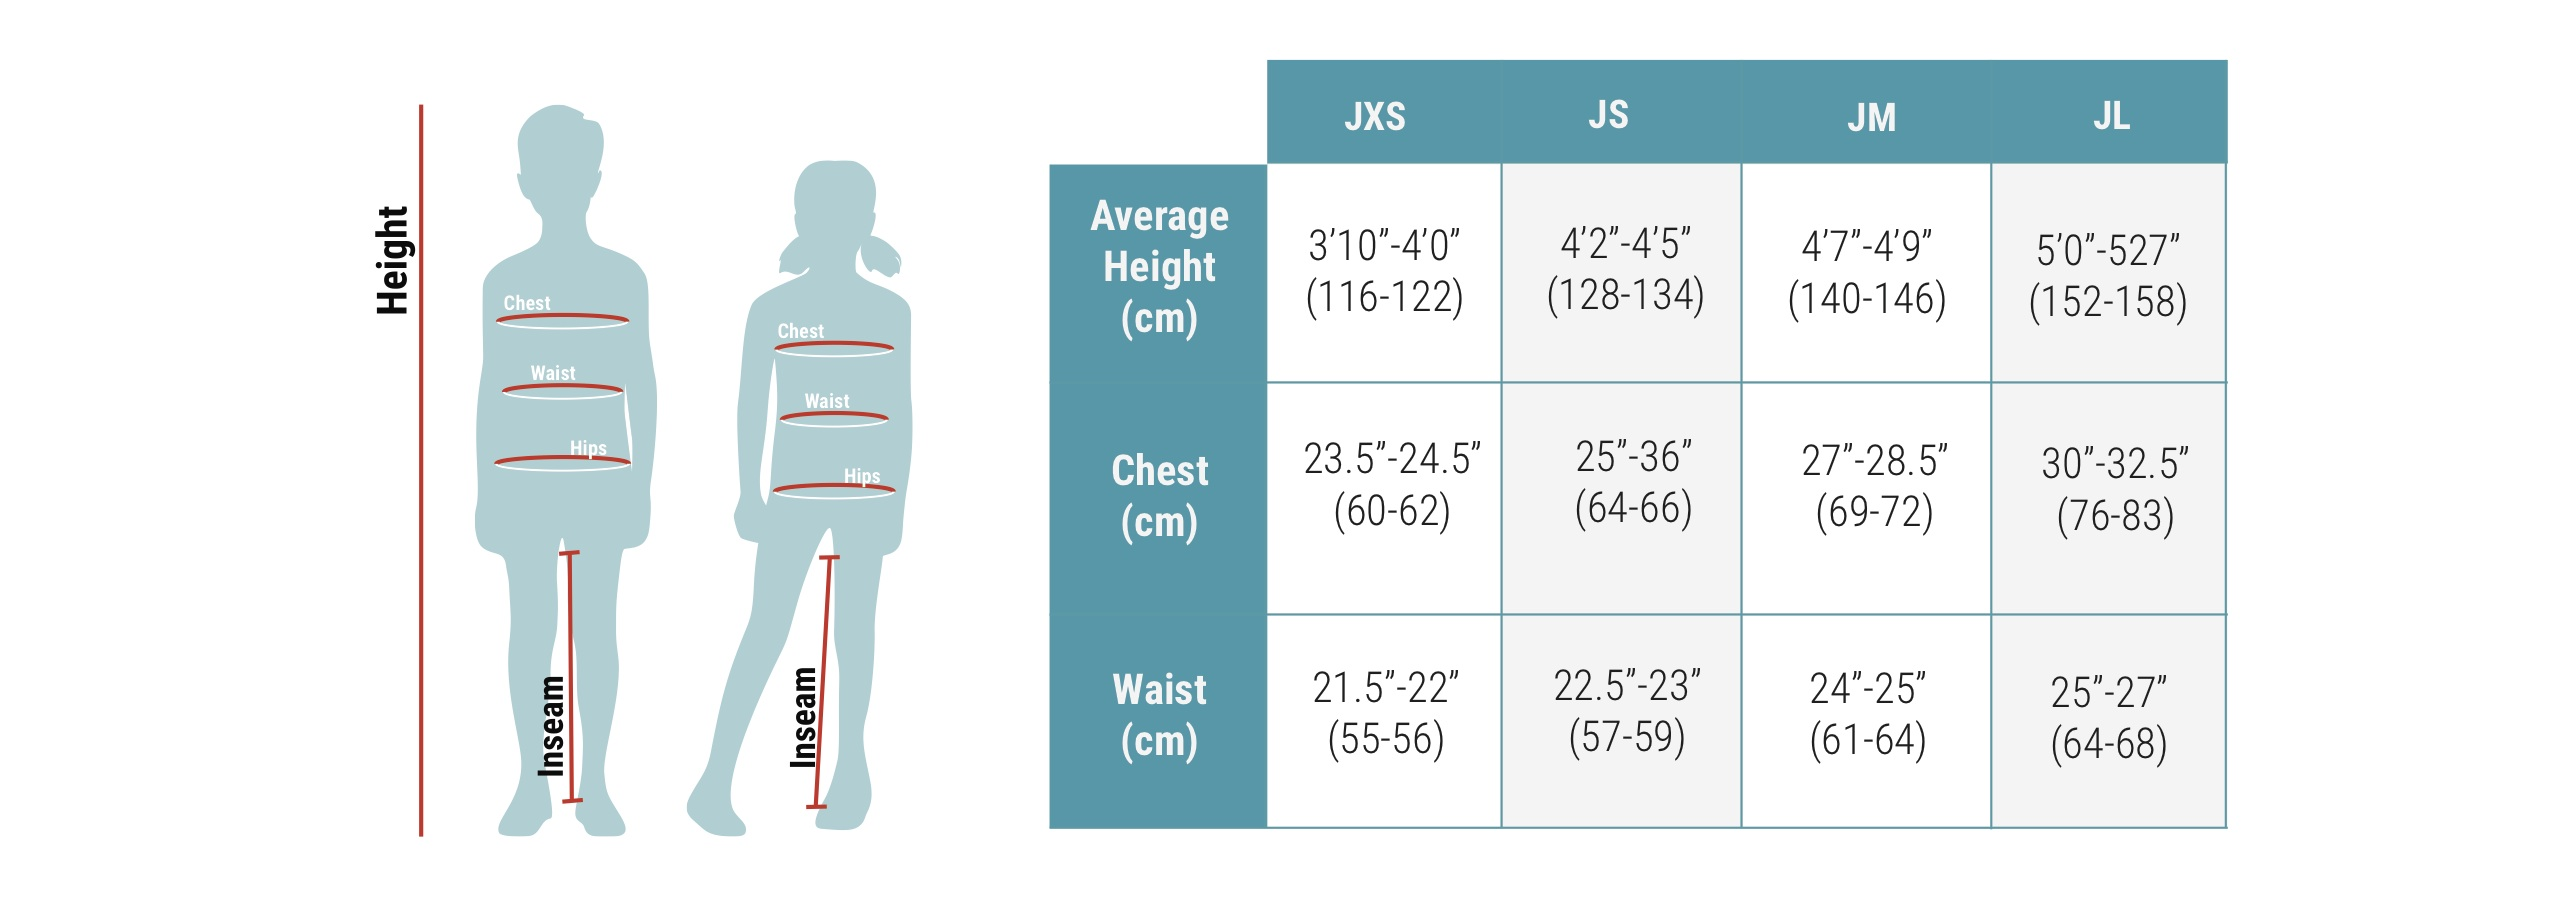 wcs-junior-gill-sizing-chart.jpg